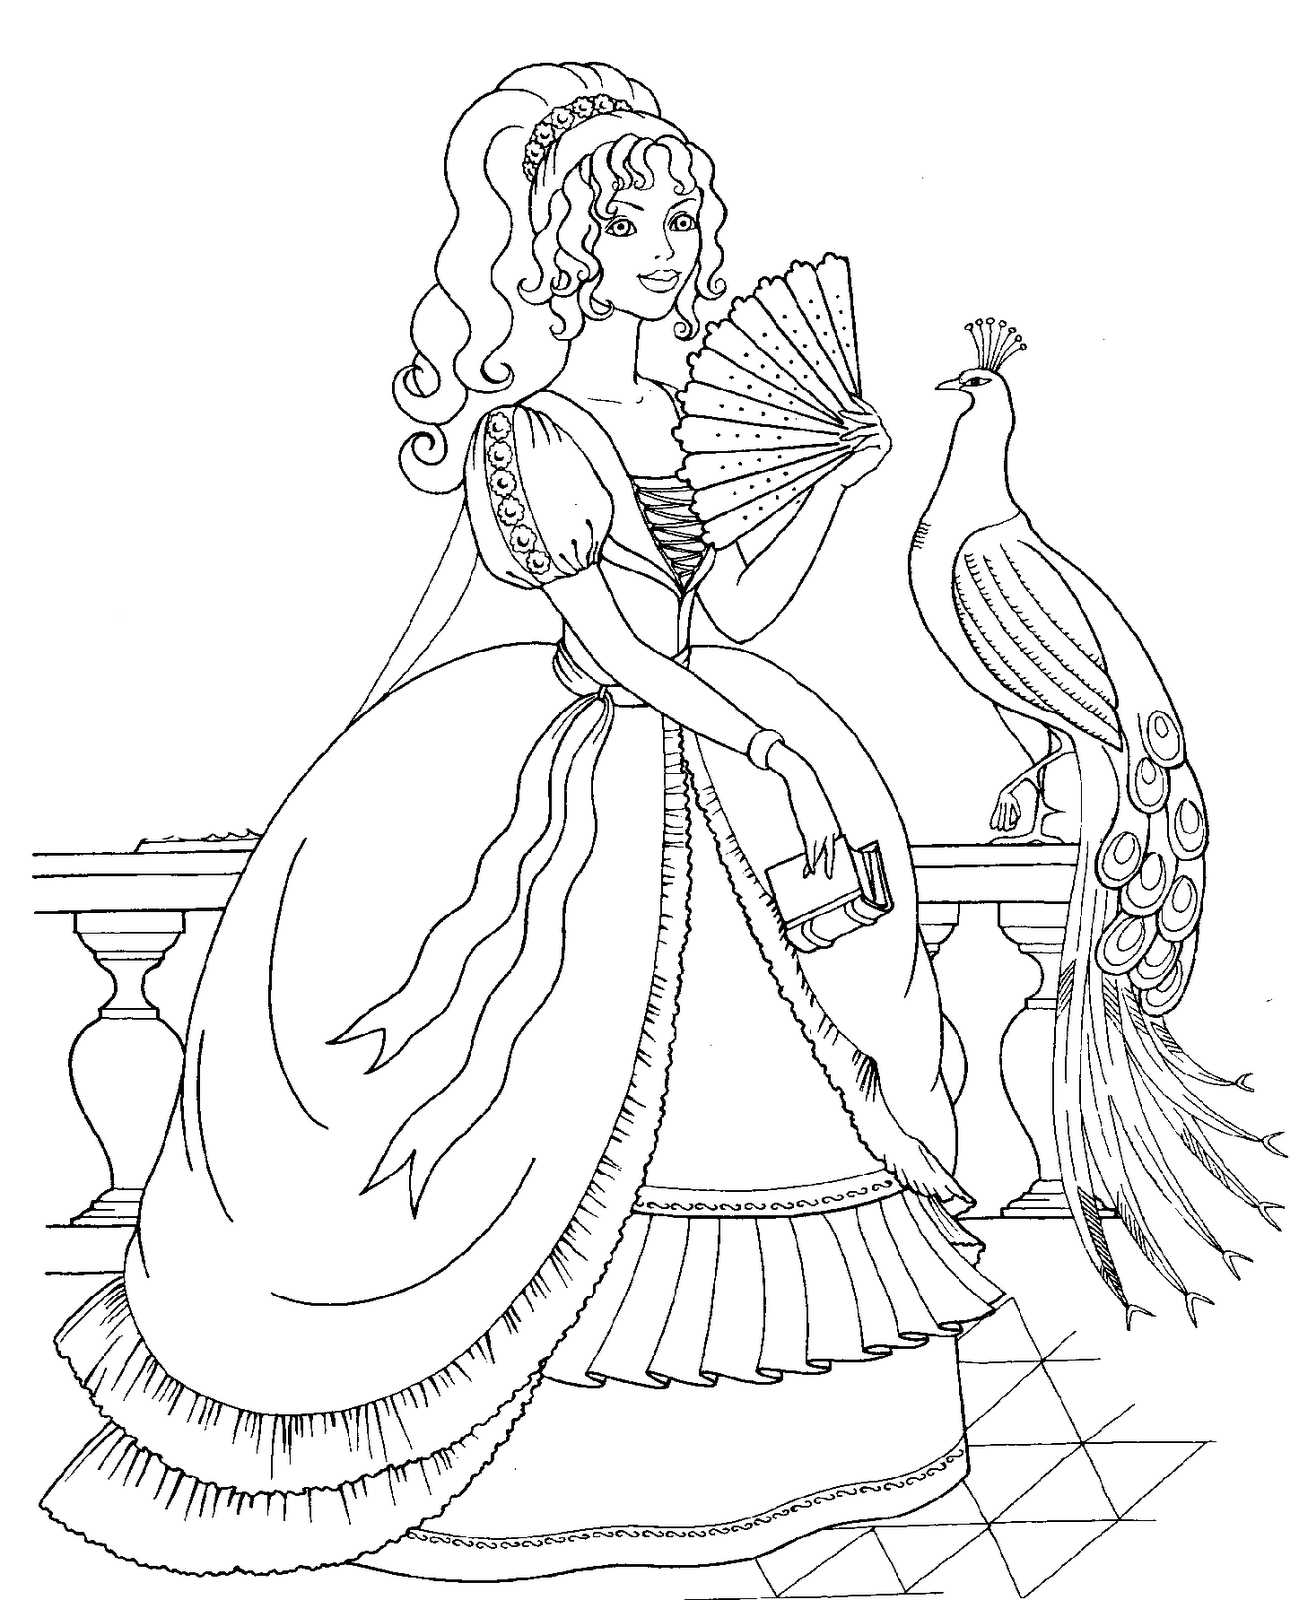 Realistic Princess Coloring Pages At Getcolorings